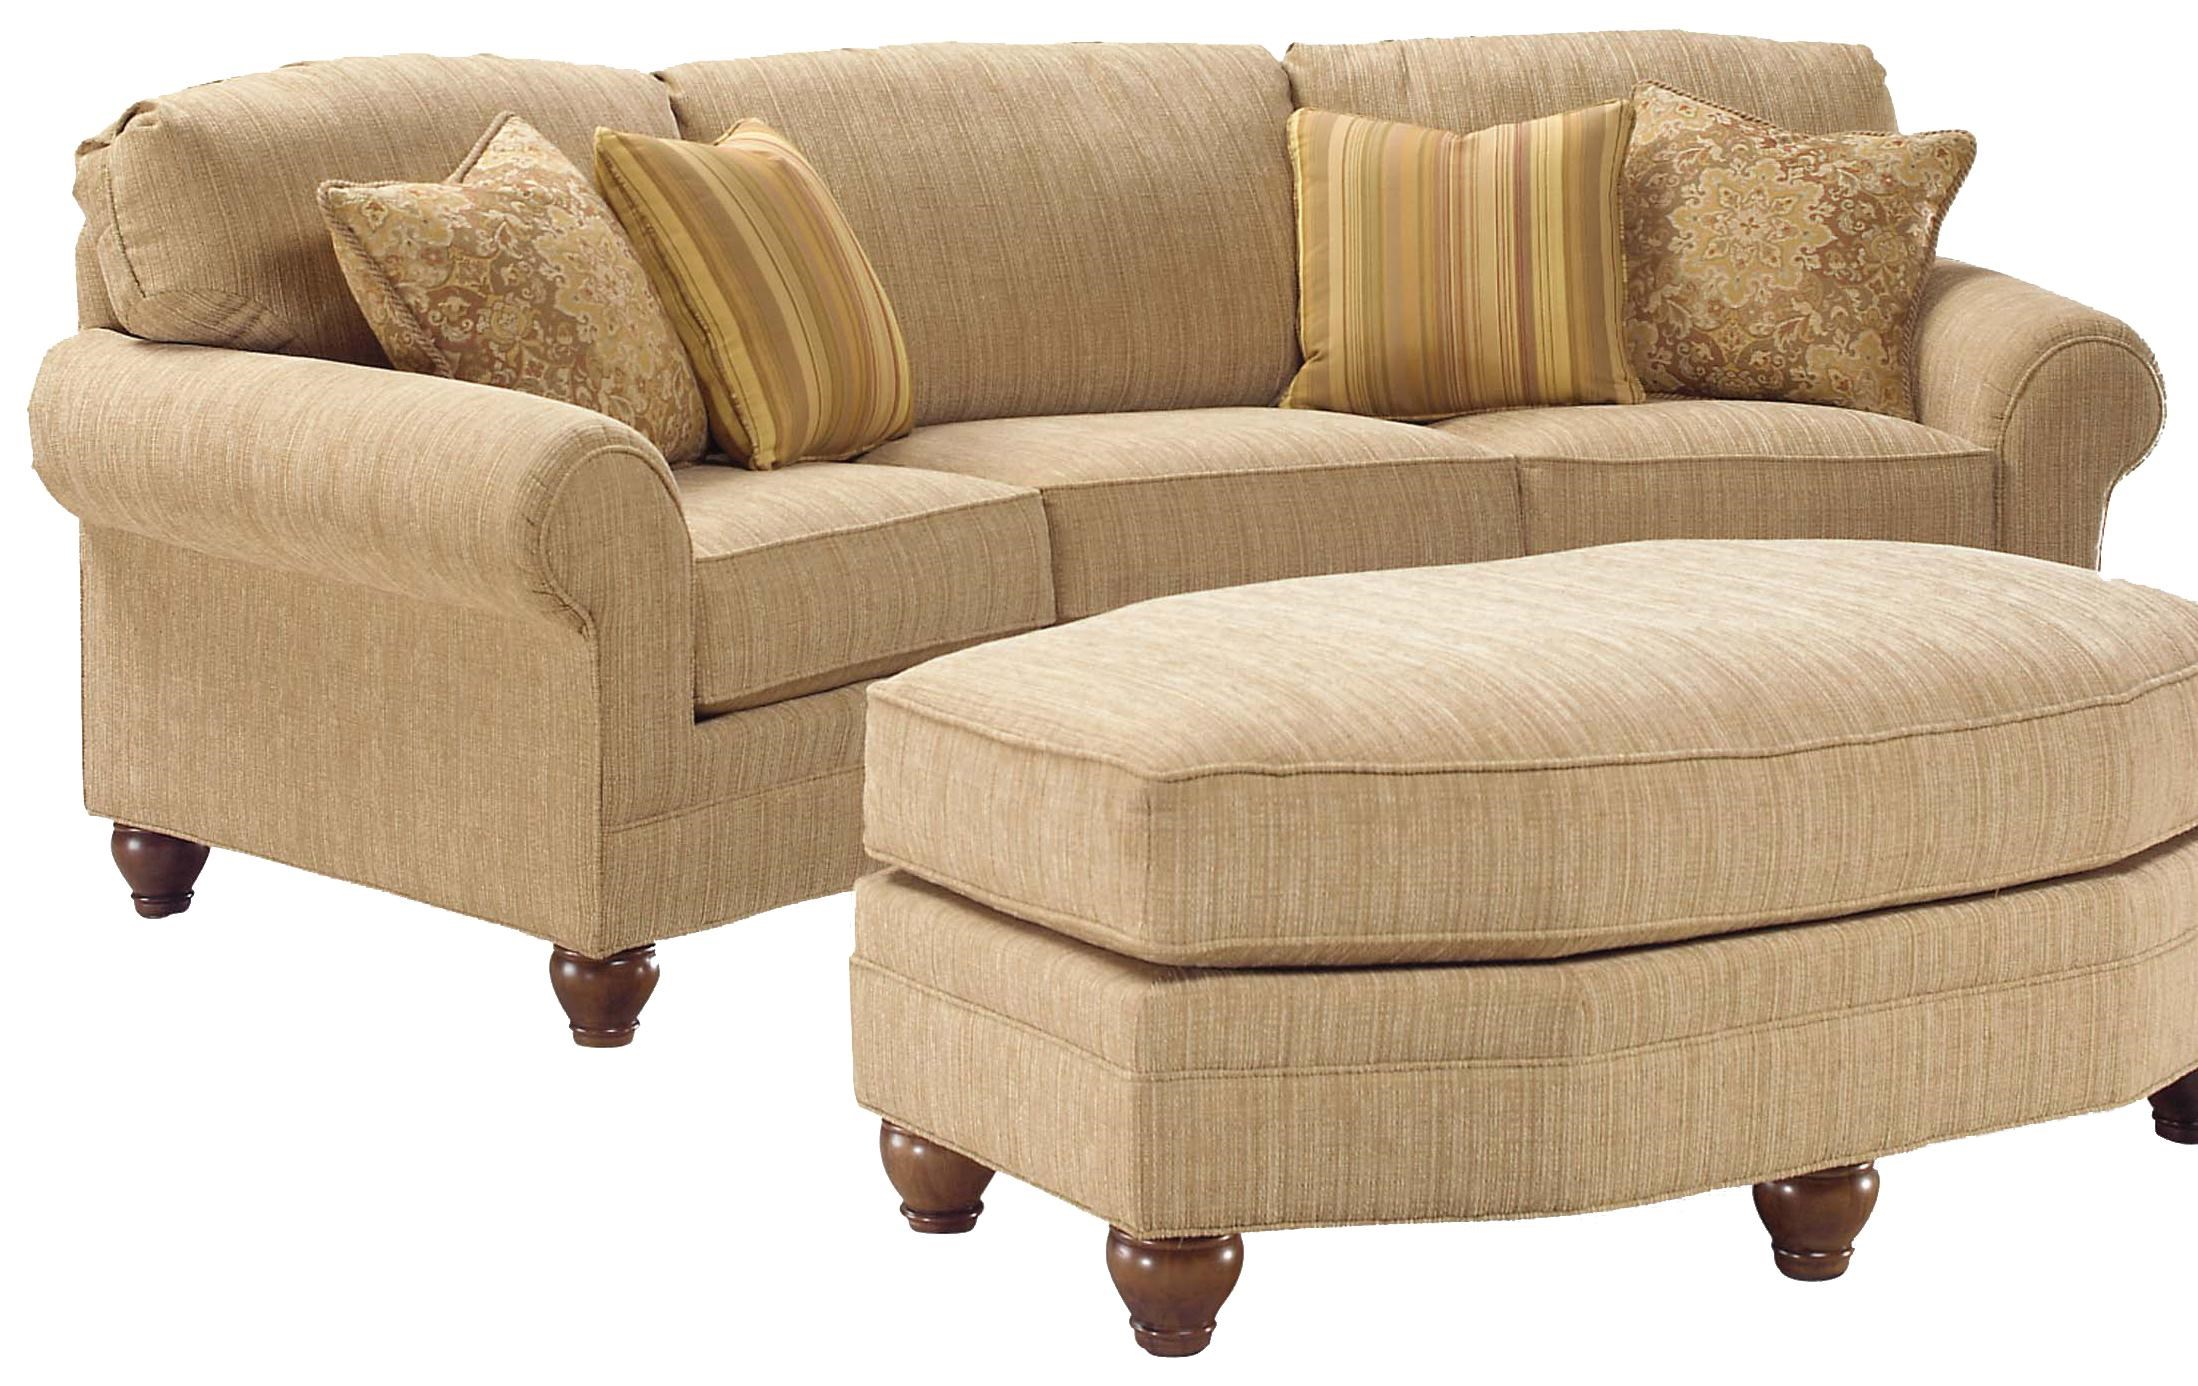 Fairfield 3768 Curved Arch Sofa  Belfort Furniture